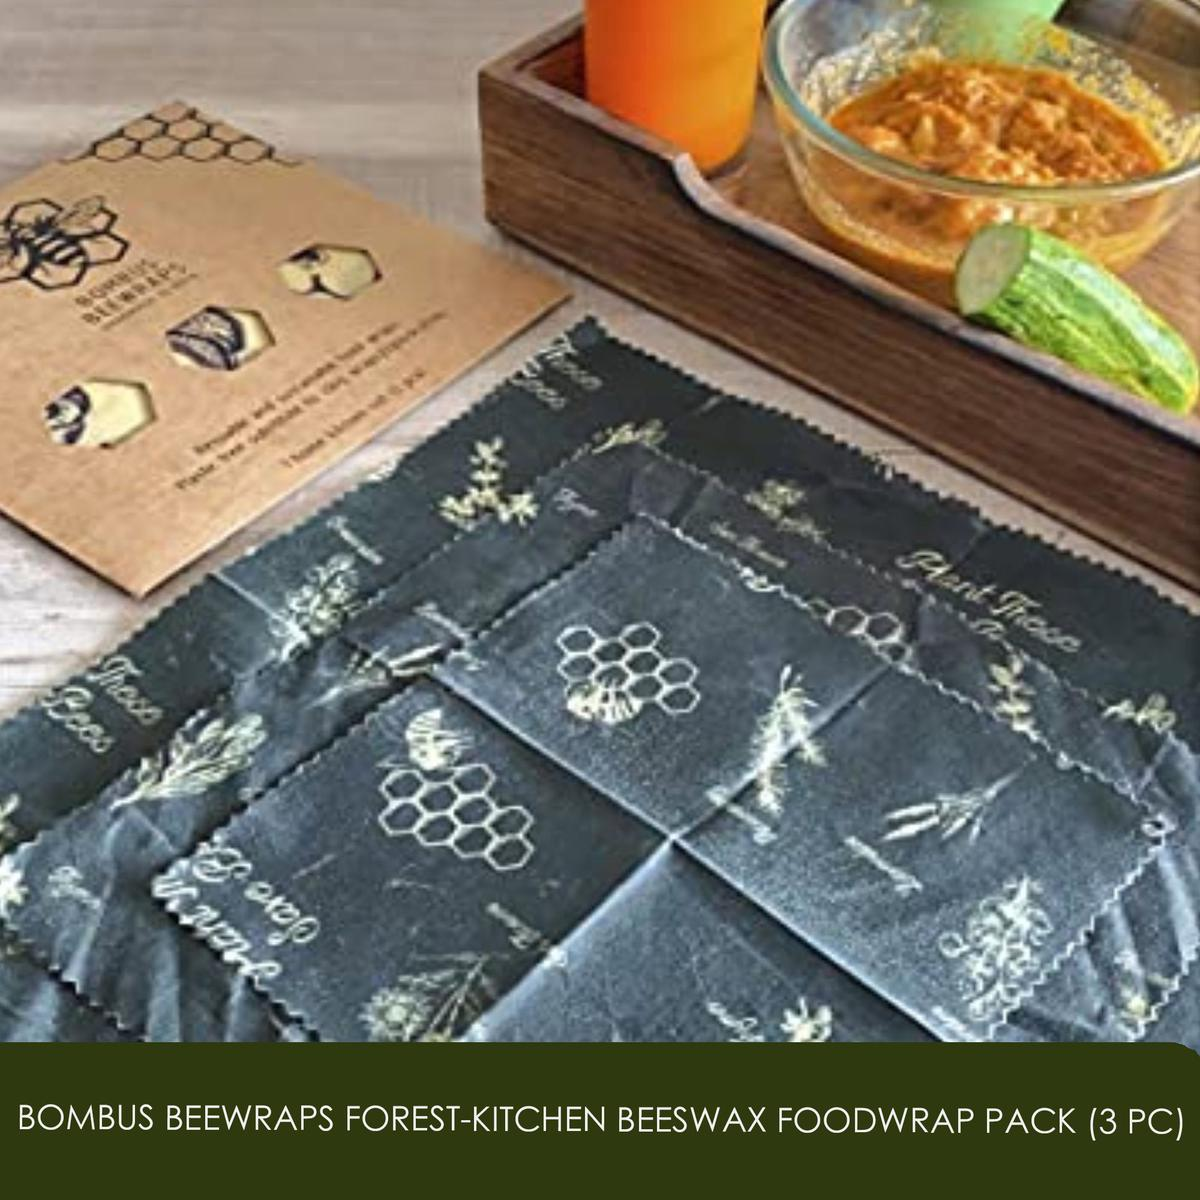 GOLI SODA - Bombus Beewraps Forest-Kitchen Beeswax Foodwrap Pack (3 pc)